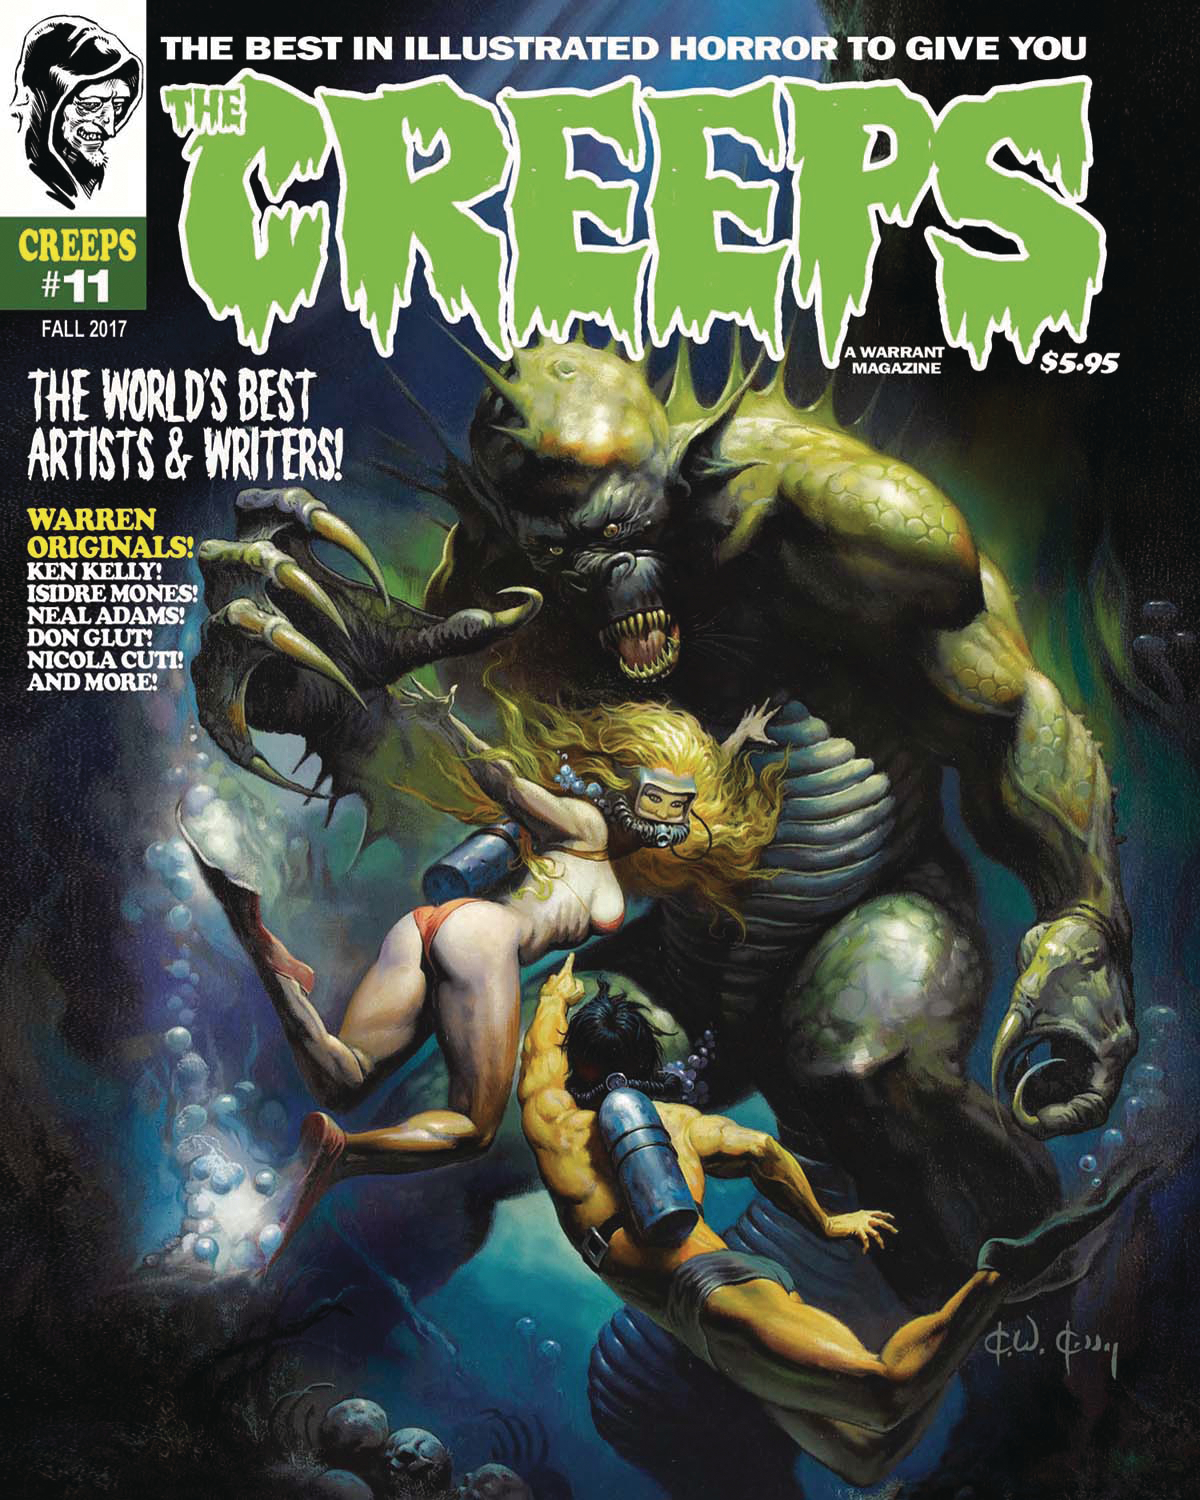 THE CREEPS #11